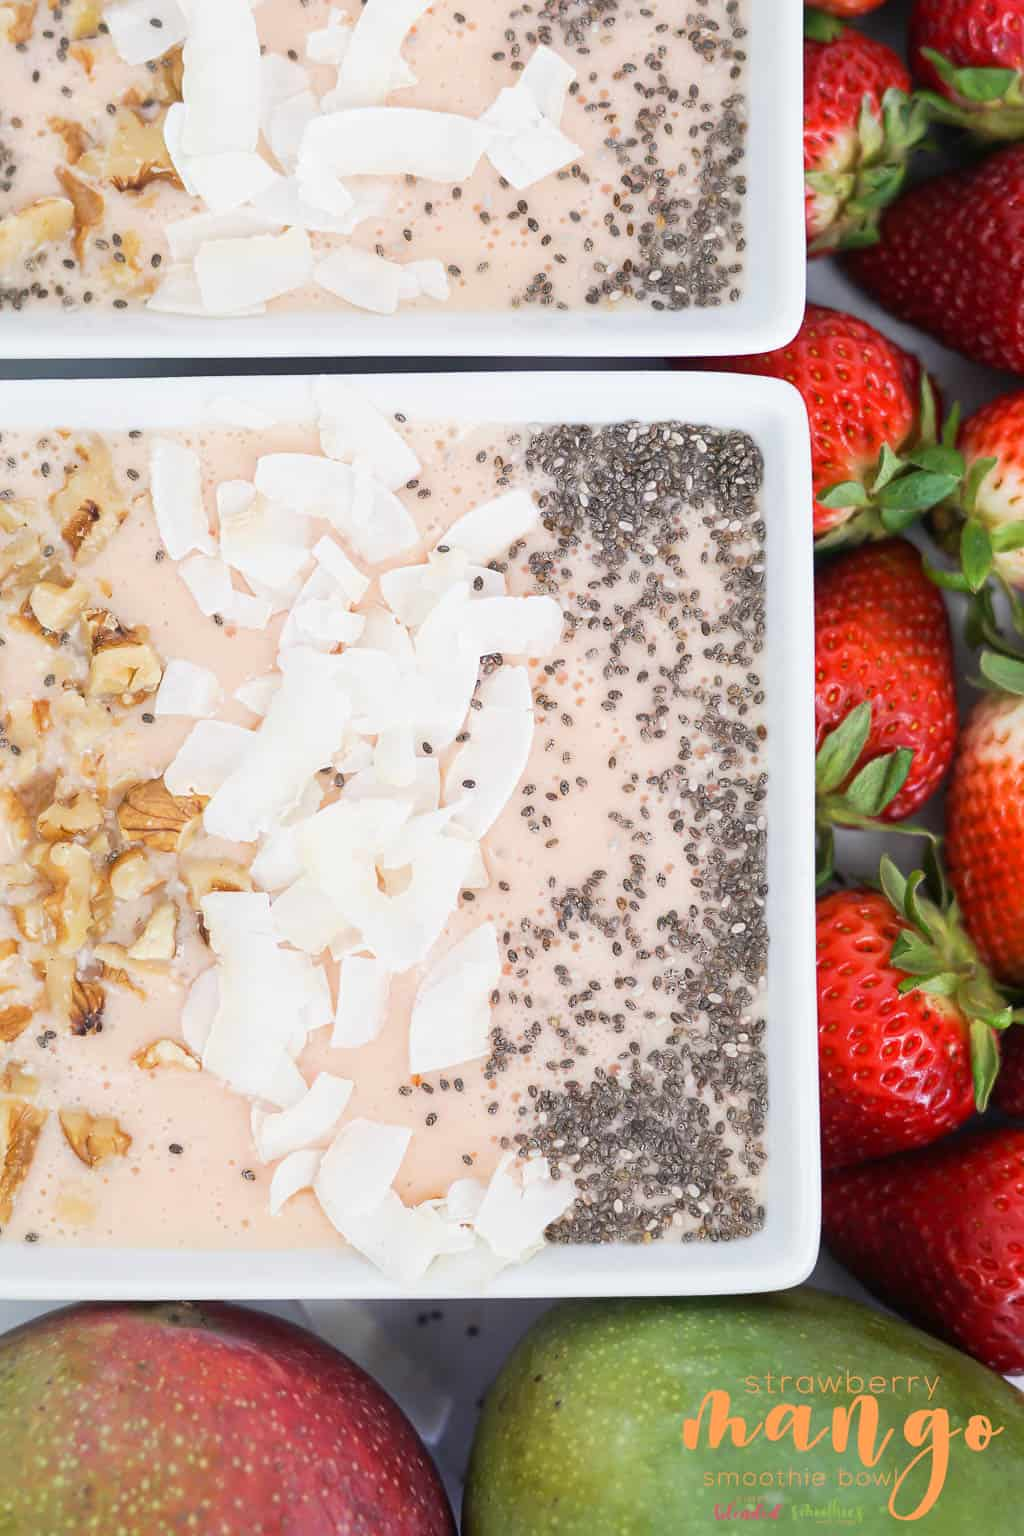 Strawberry Mango Smoothie Bowl - this delicious mango strawberry smoothie bowl is so easy to make